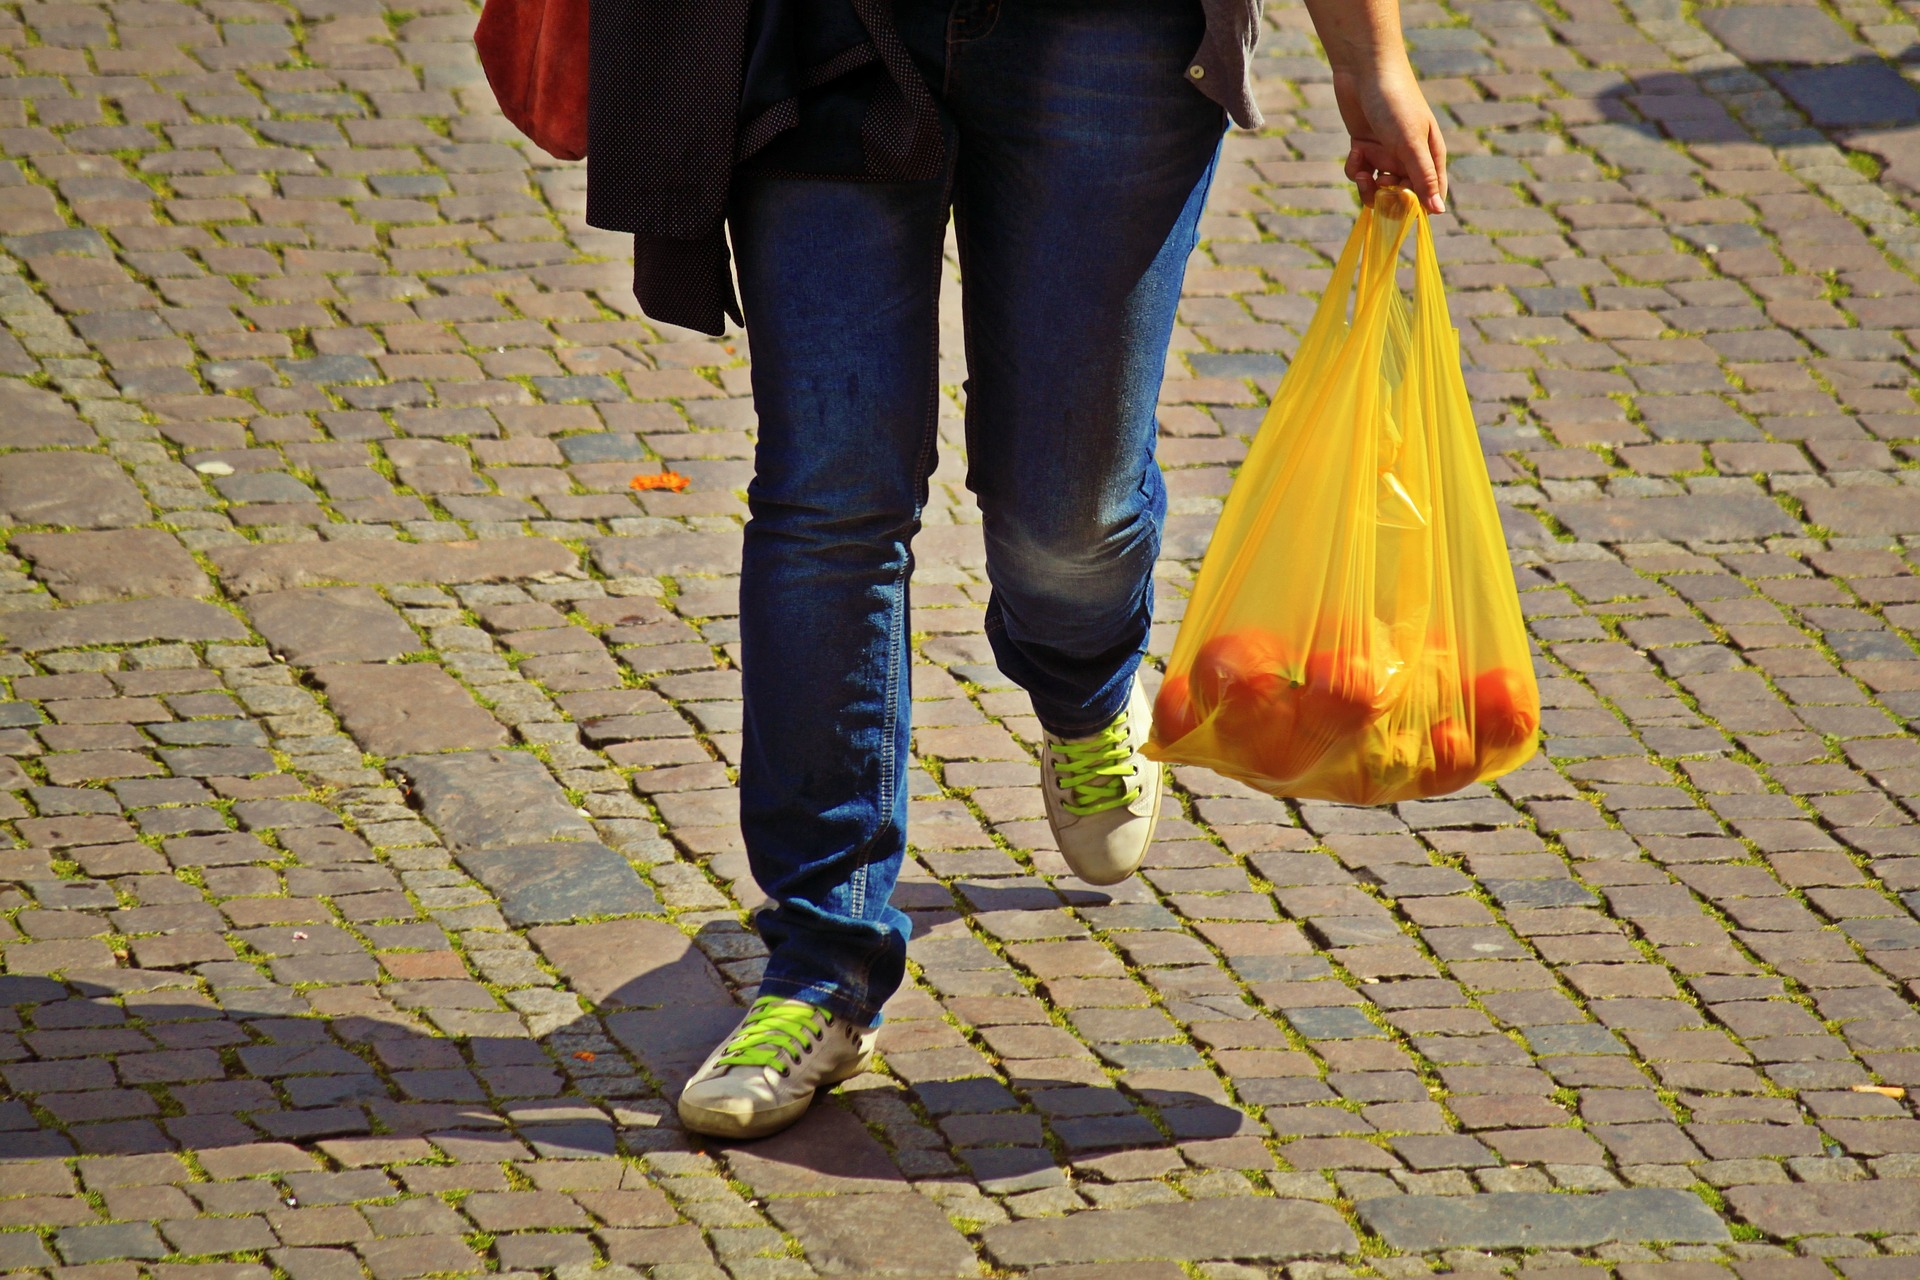 Single use plastic bag ban – Expert Reaction